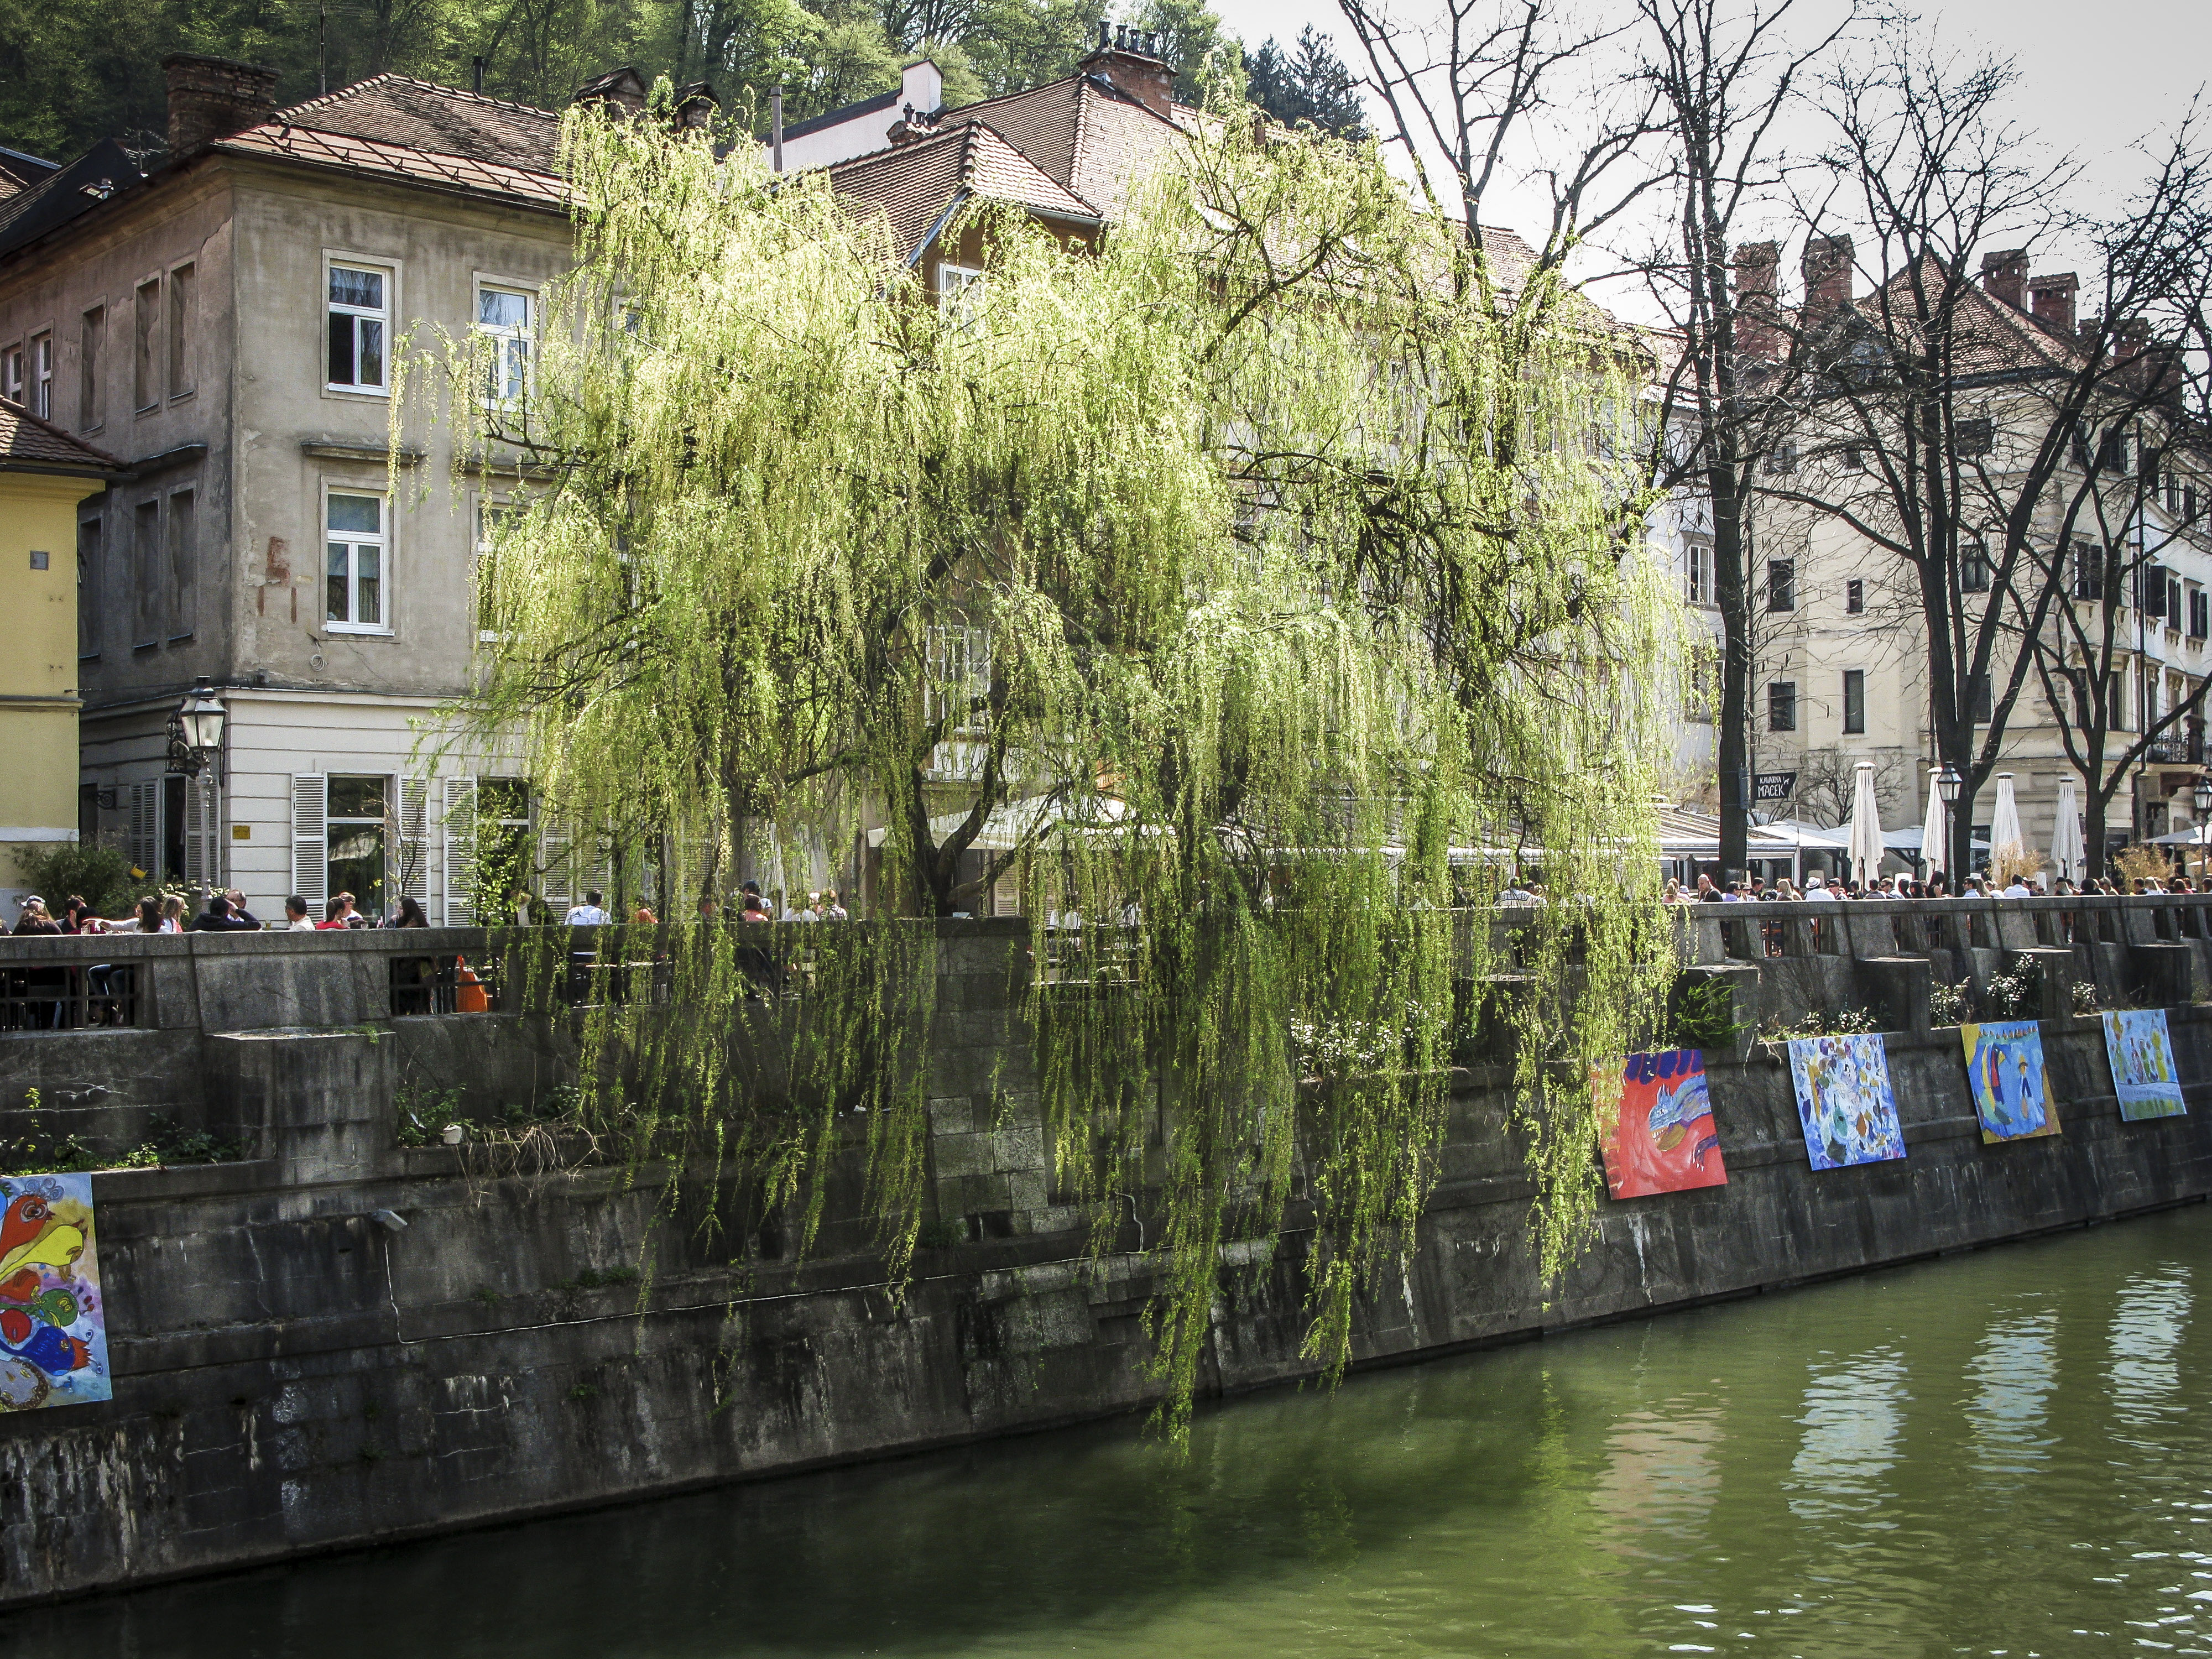 Art installations by the Ljubljanica